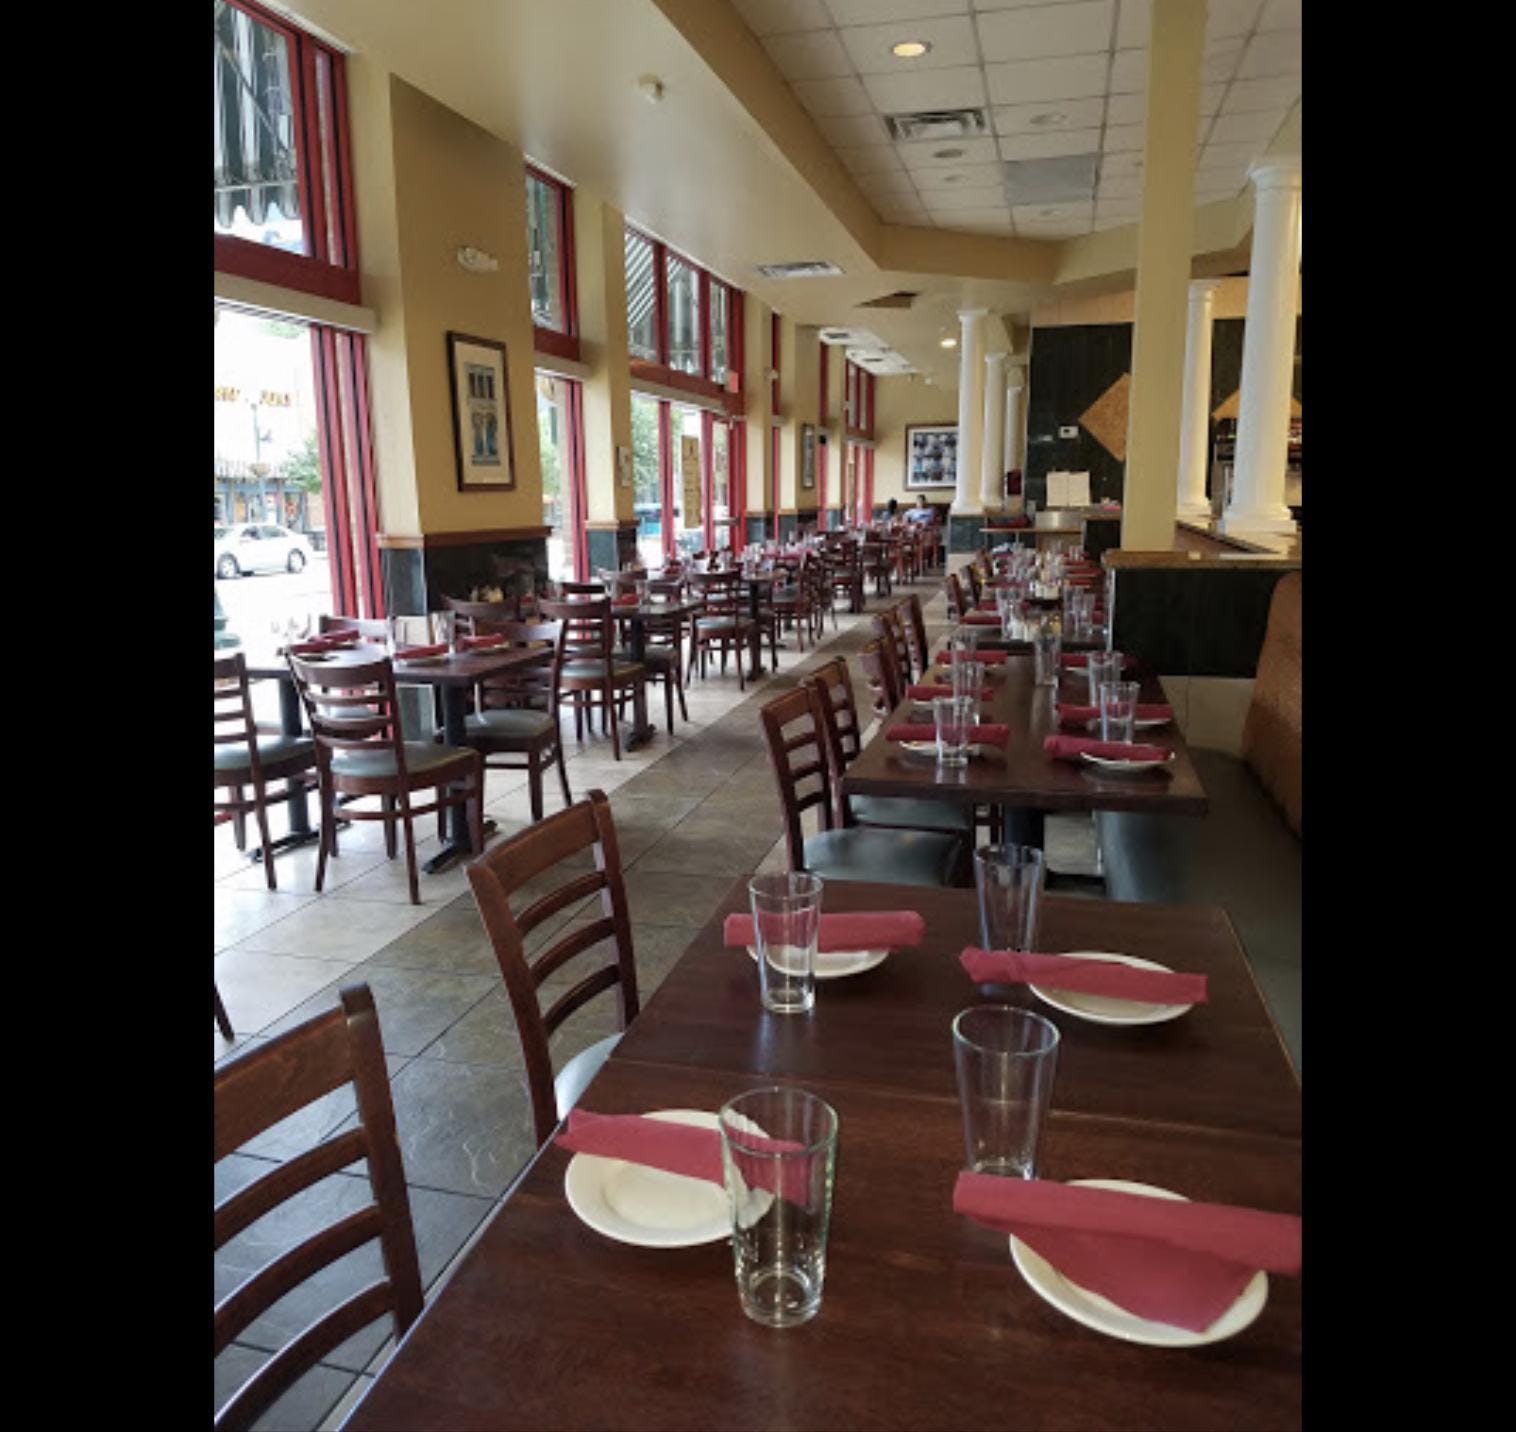 First Friday lunch location dining area of Mamma Lucia's